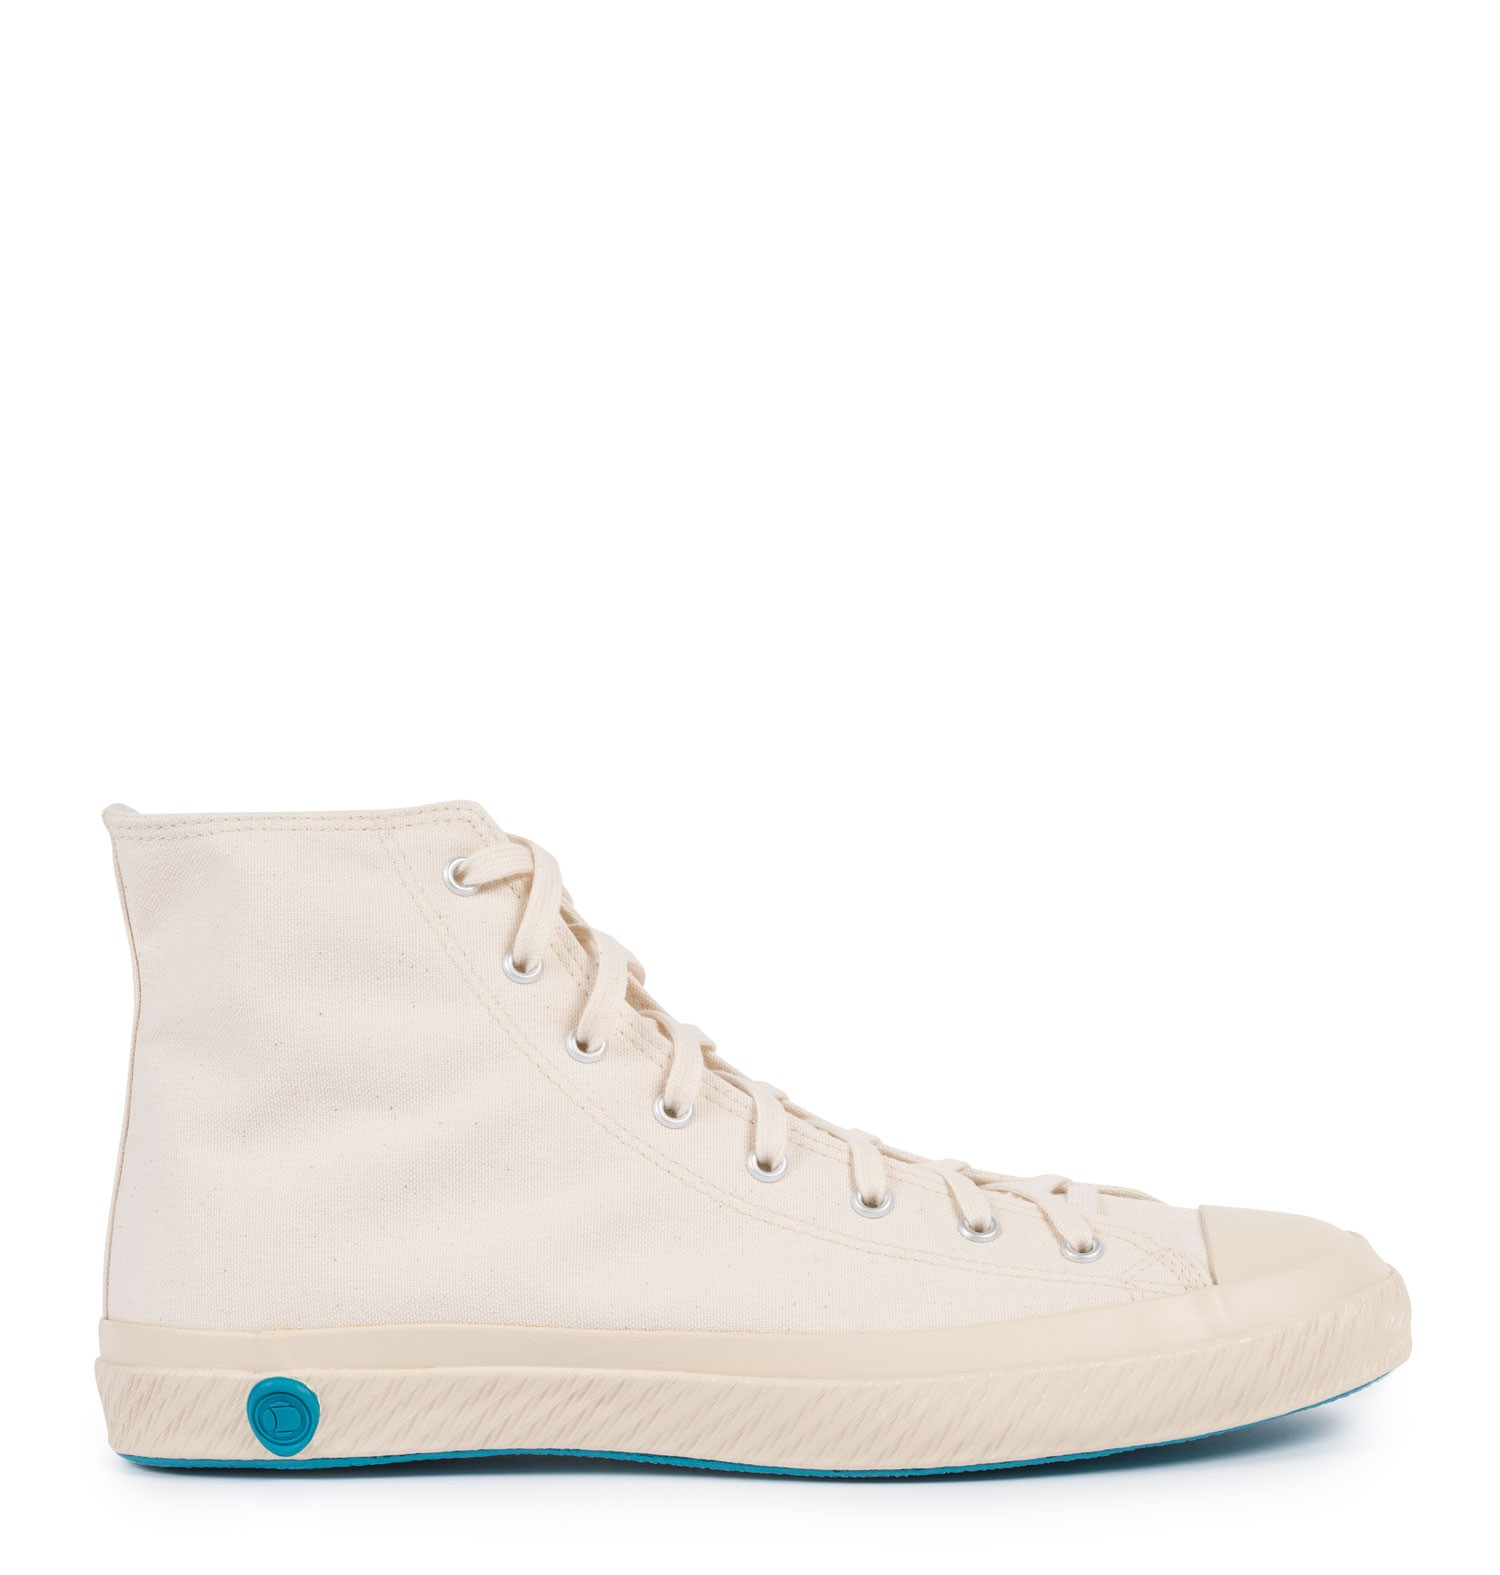 Sunspel Off White Shoes Like Pottery Canvas Trainers High Top